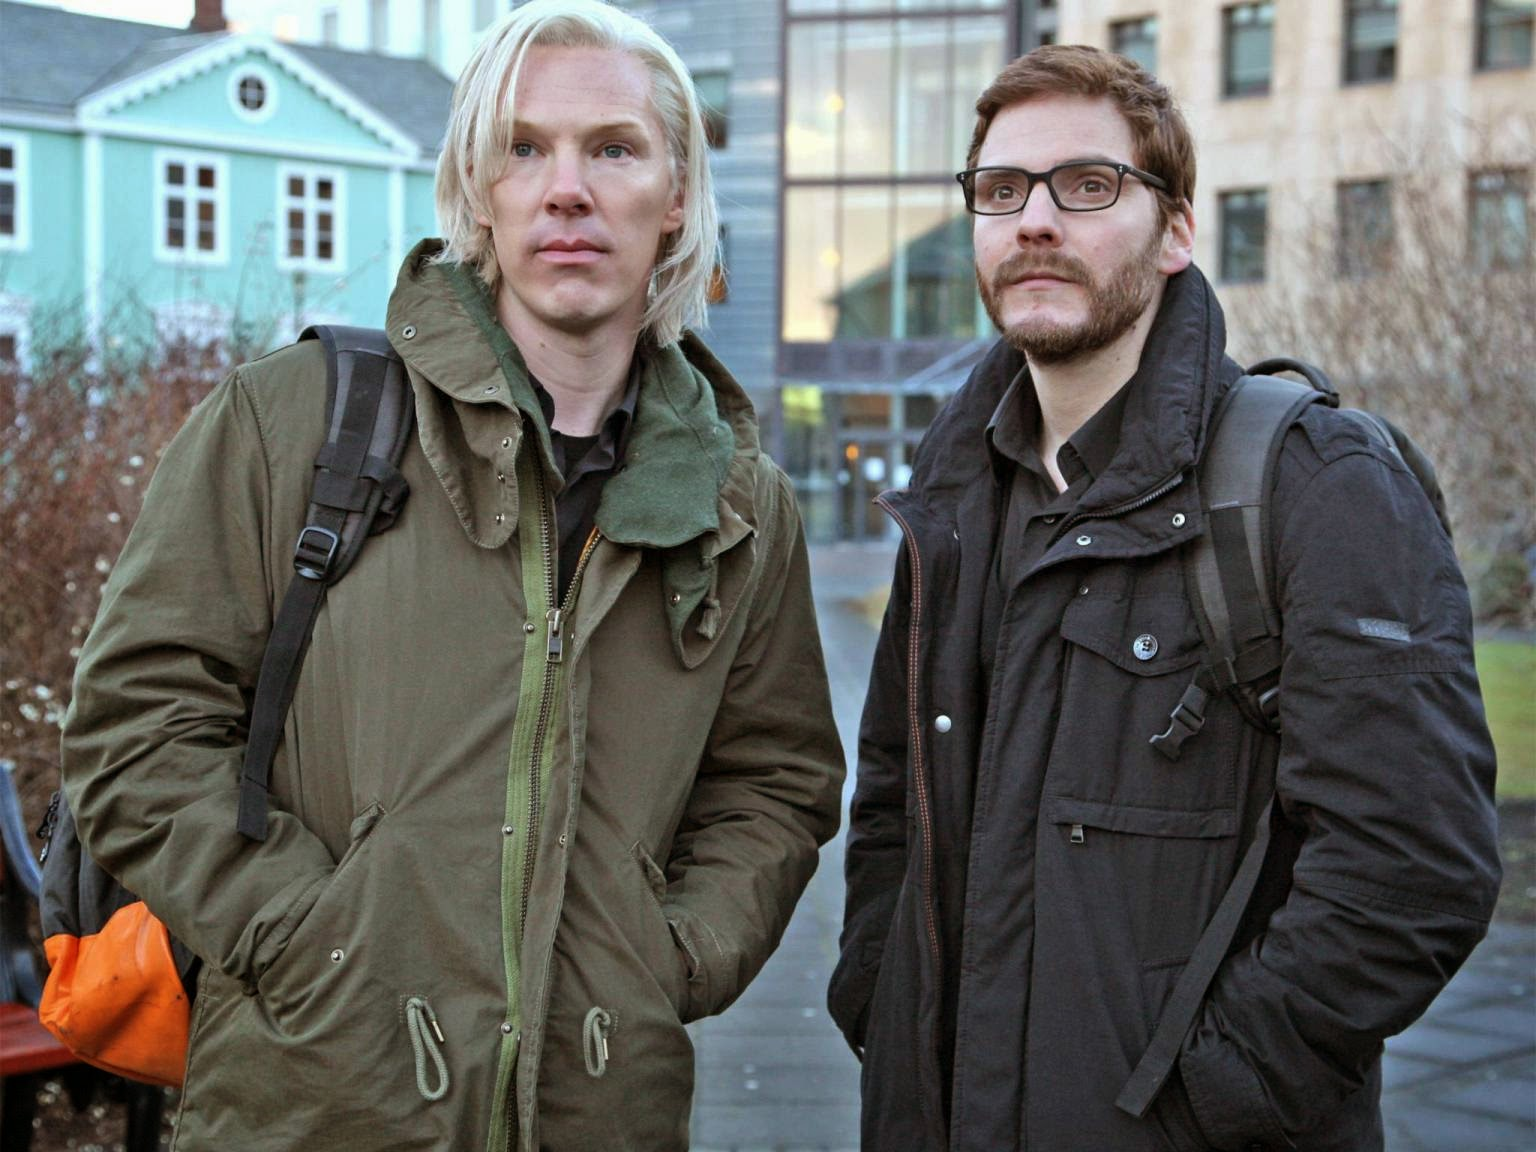 Movie review of the Fifth Estate - a film about Julian Assange and WikiLeaks